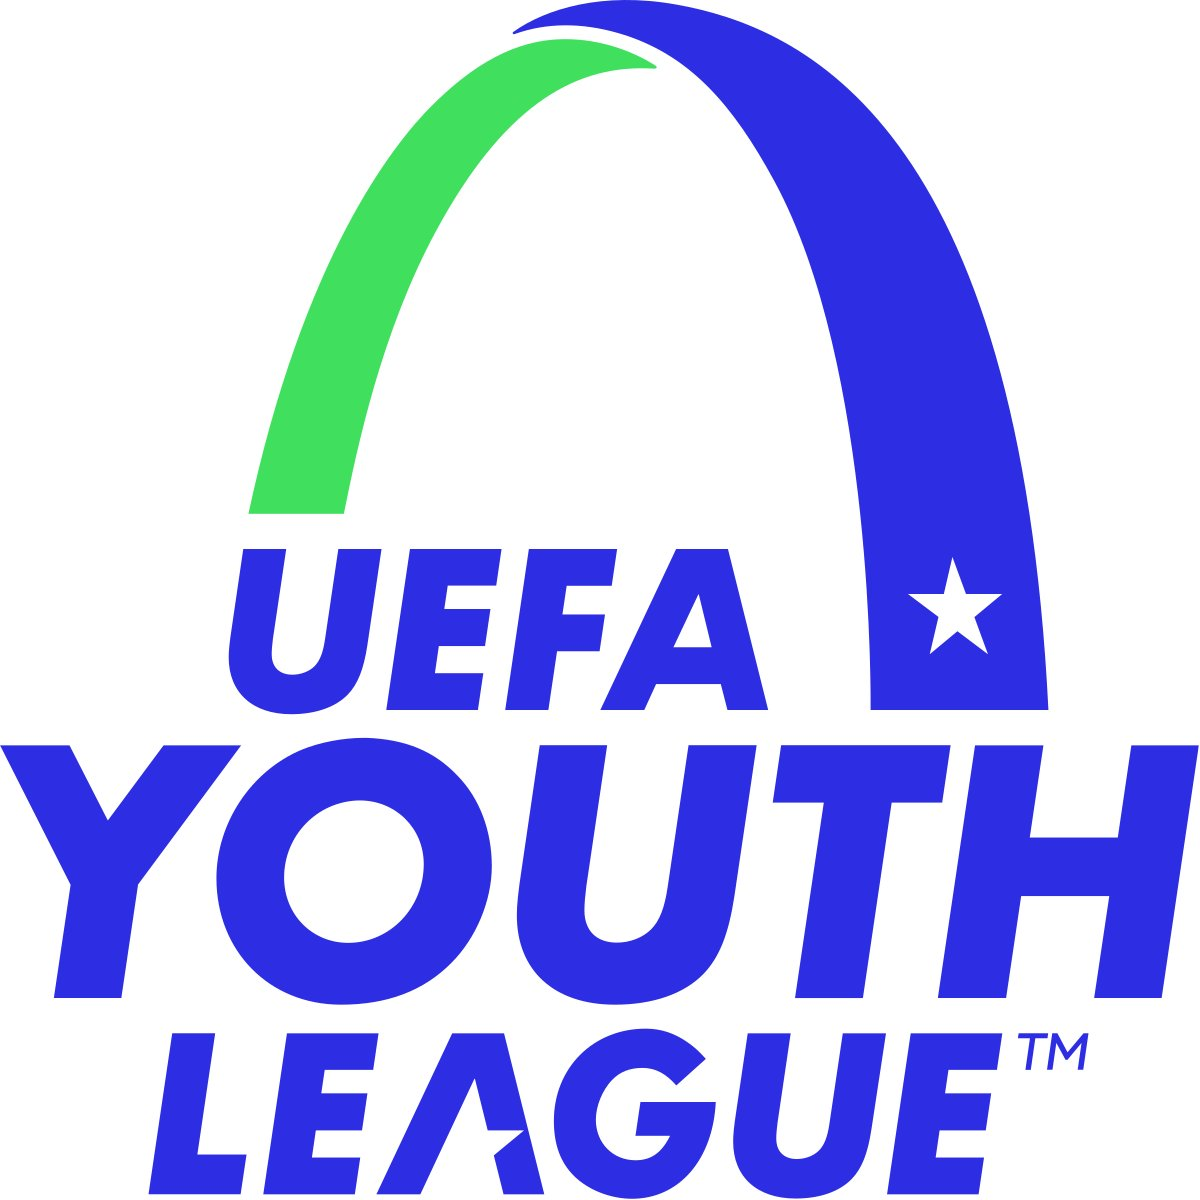 A quick reminder that there will be no UEFA Youth League on Tuesdays & Wednesdays like usual. The competition will feature a straight knockout format from the round of 64. It will start in March 2021 with final details to be approved by the UEFA Executive Committee.